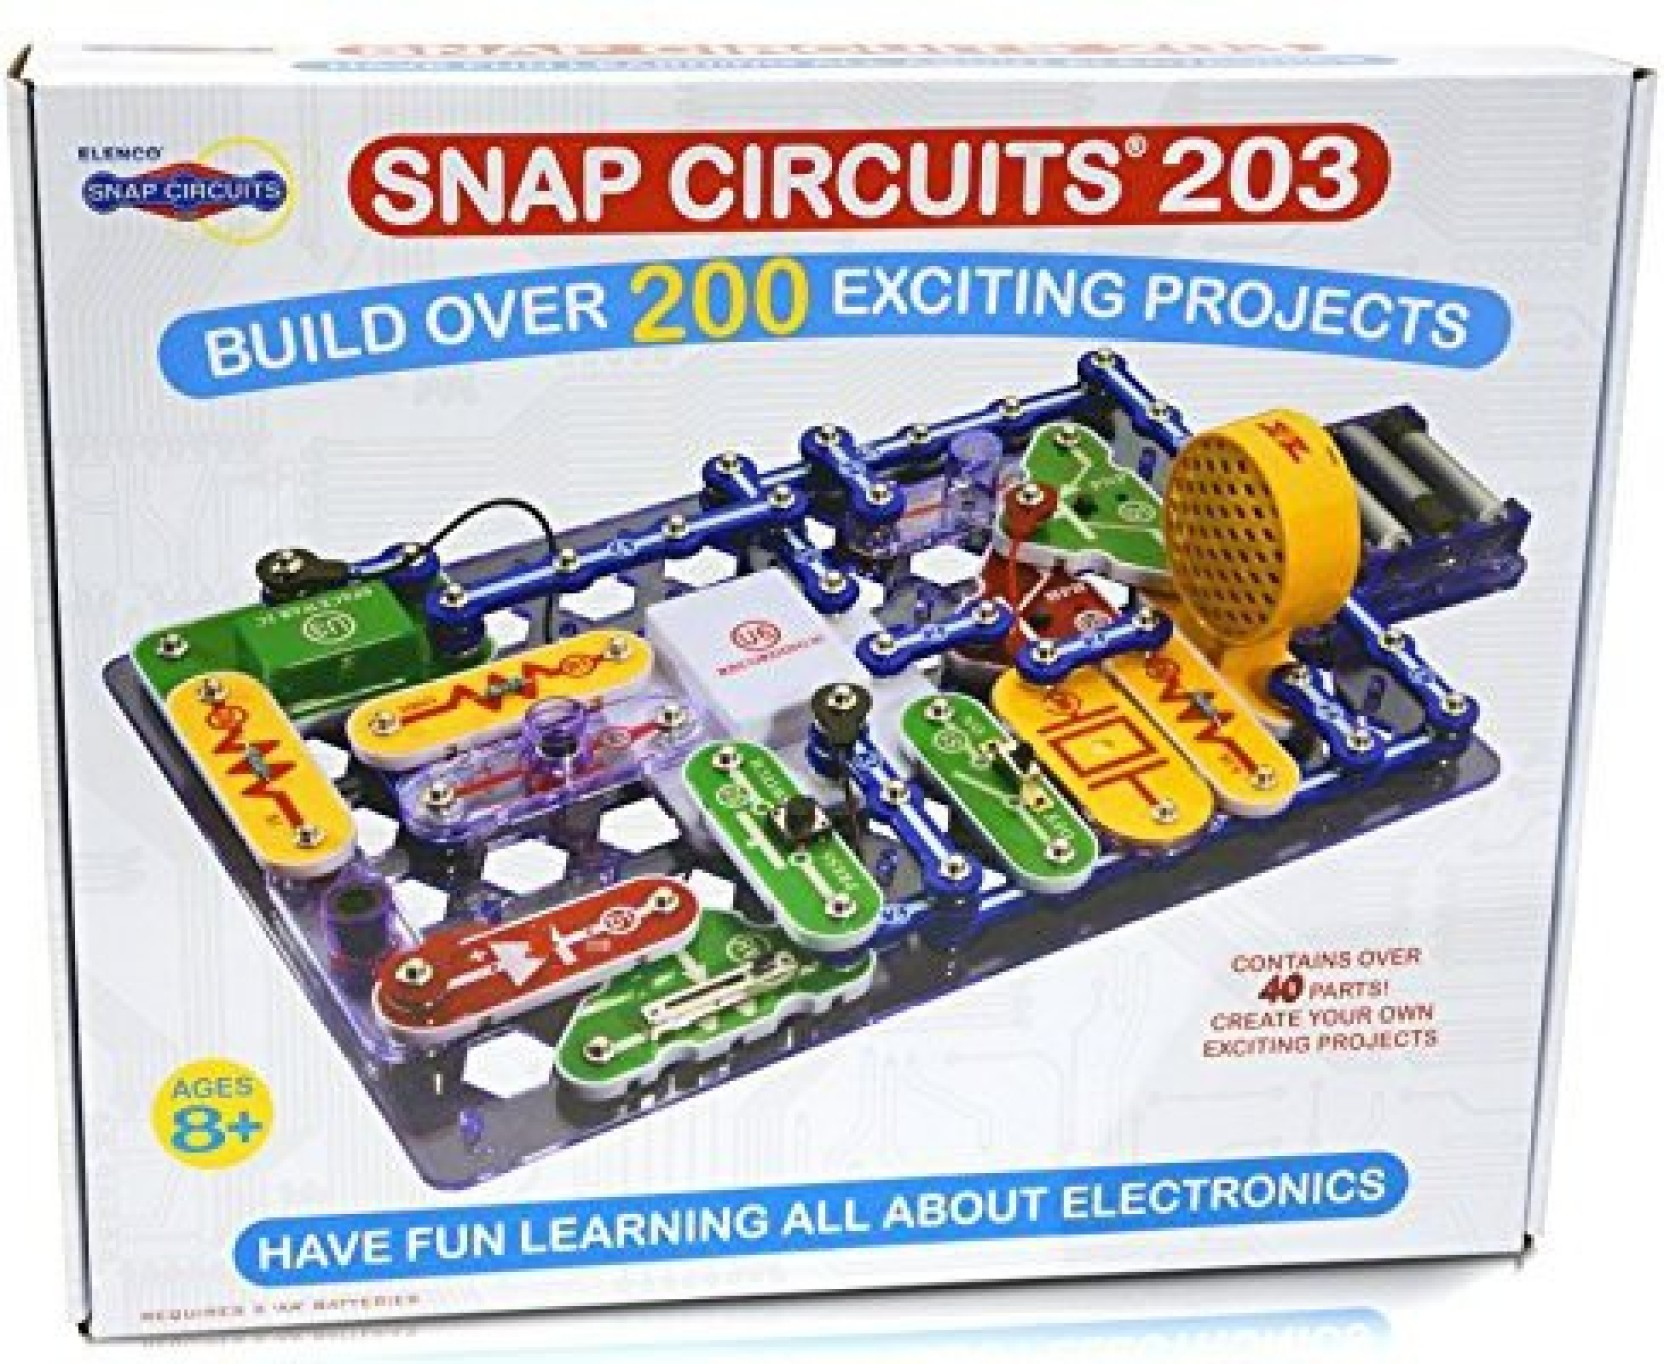 Generic Snap Circuits 203 Electronics Discovery Kit Price In India Circuitsr By Elencor Replacement Parts On Offer